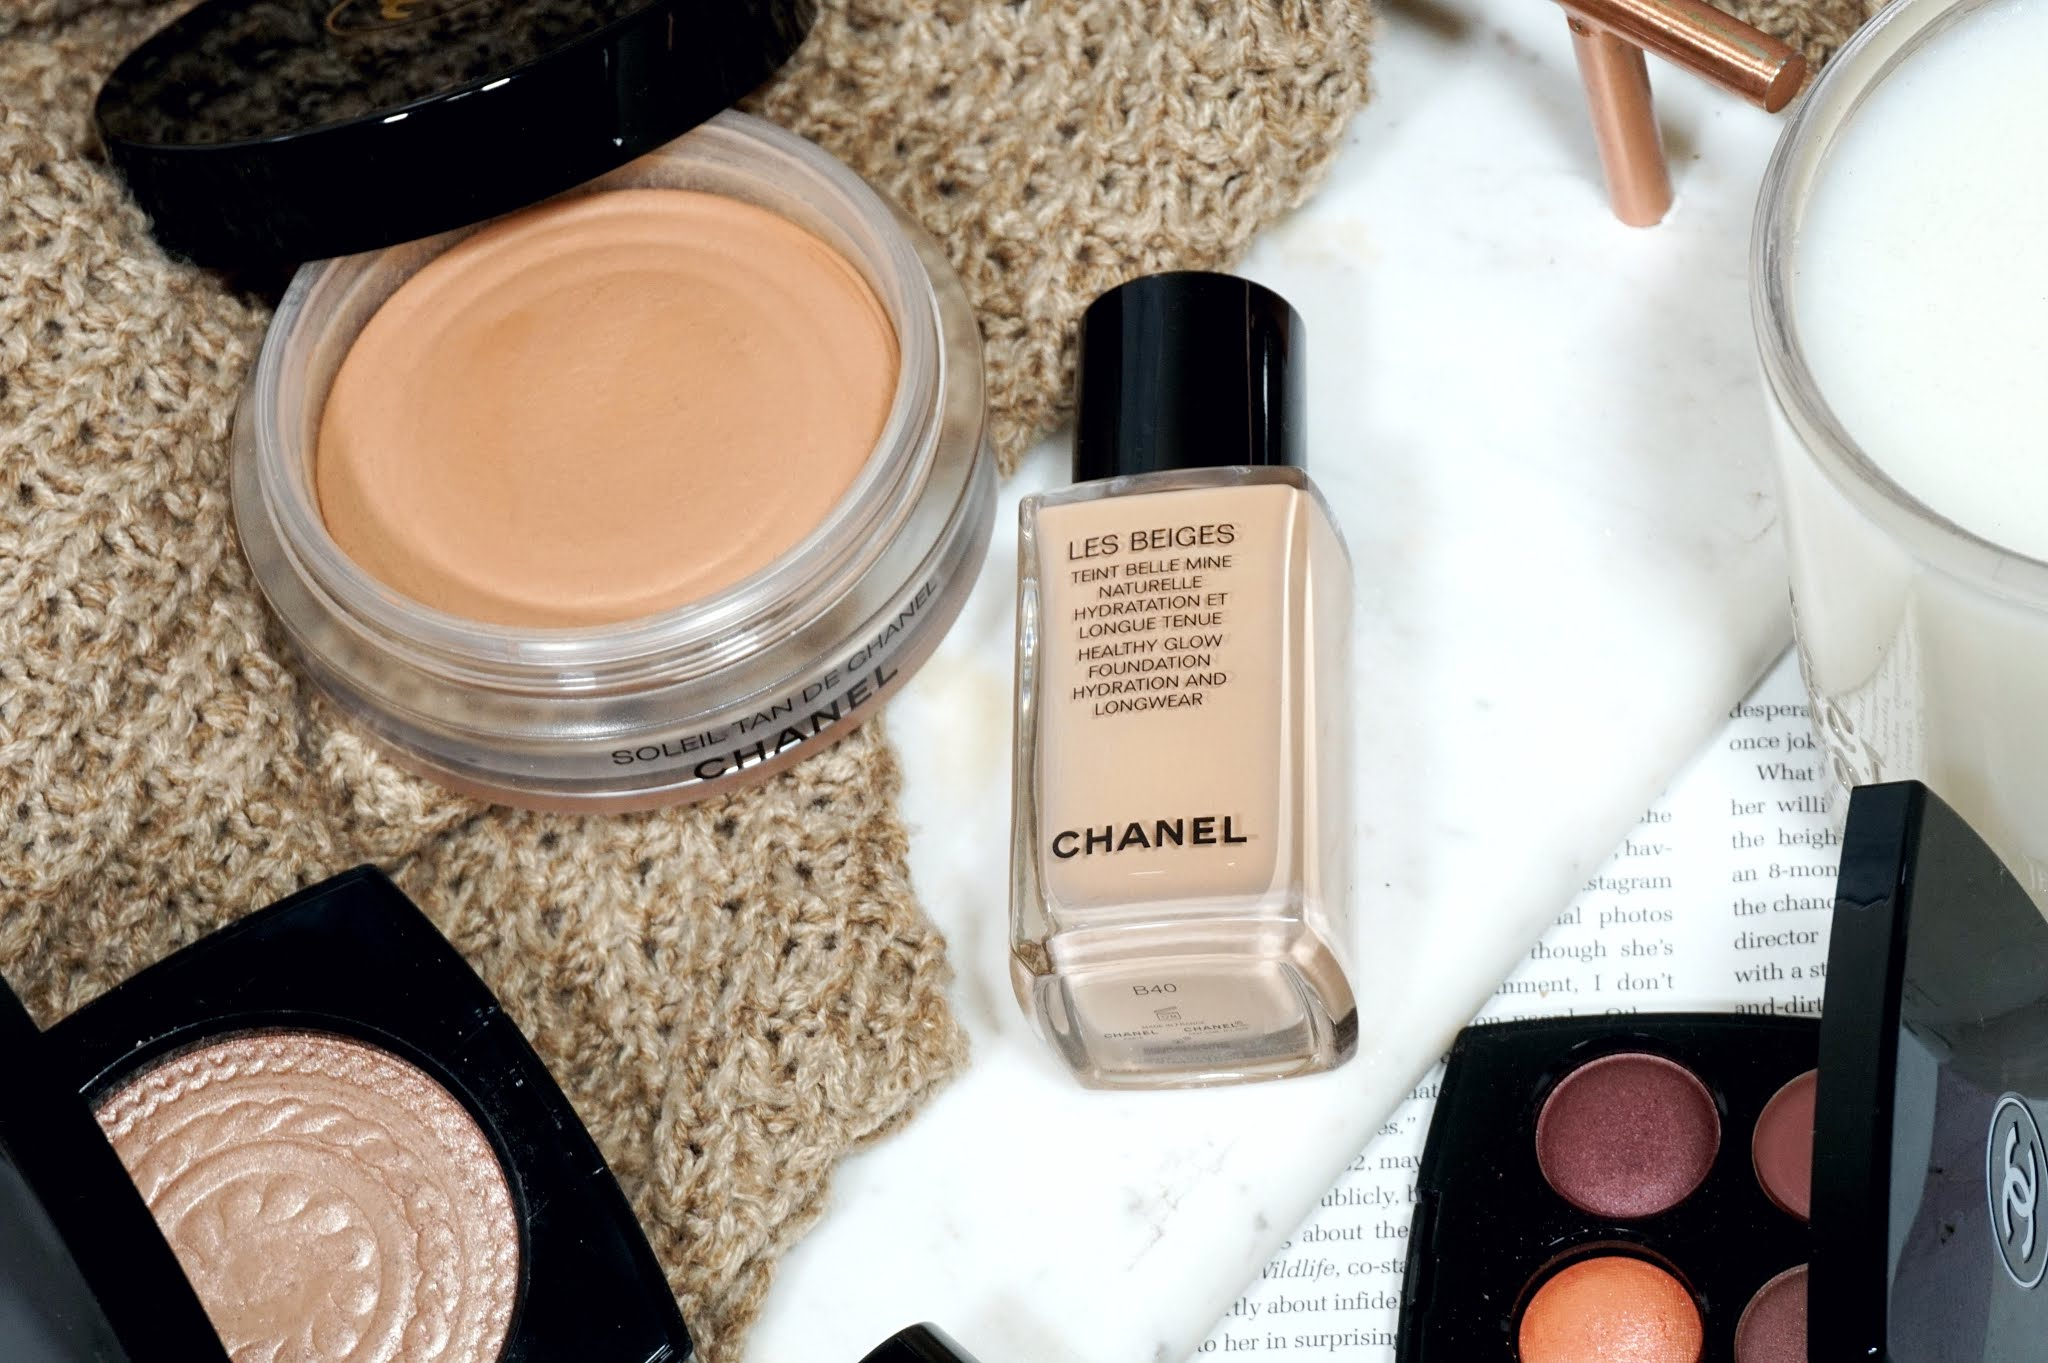 Chanel Les Beiges Healthy Glow Foundation Review and Swatches